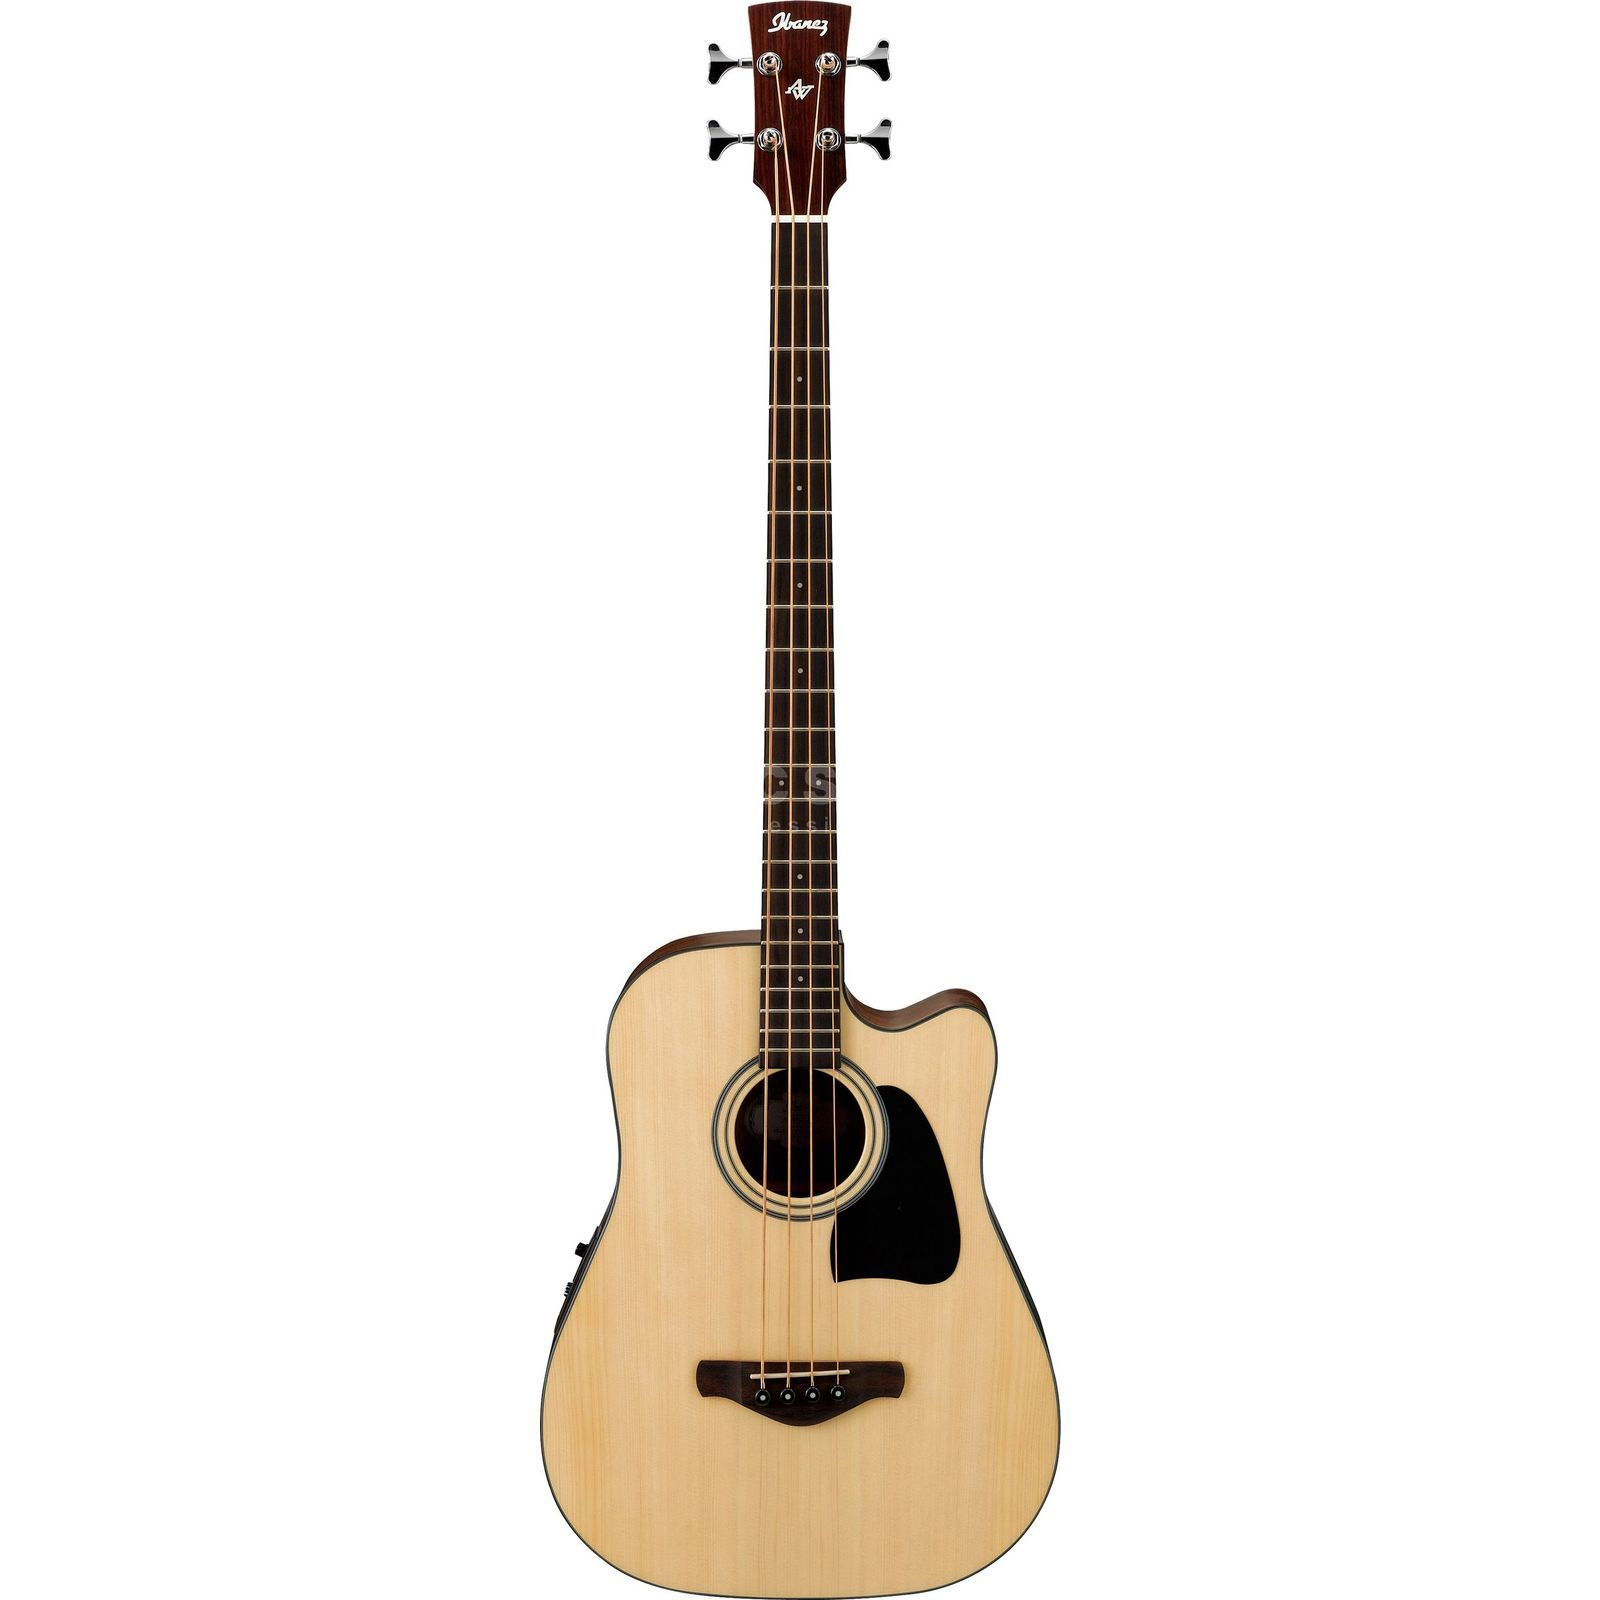 Ibanez AWB 50 CE LG Natural Low Gloss Produktbillede